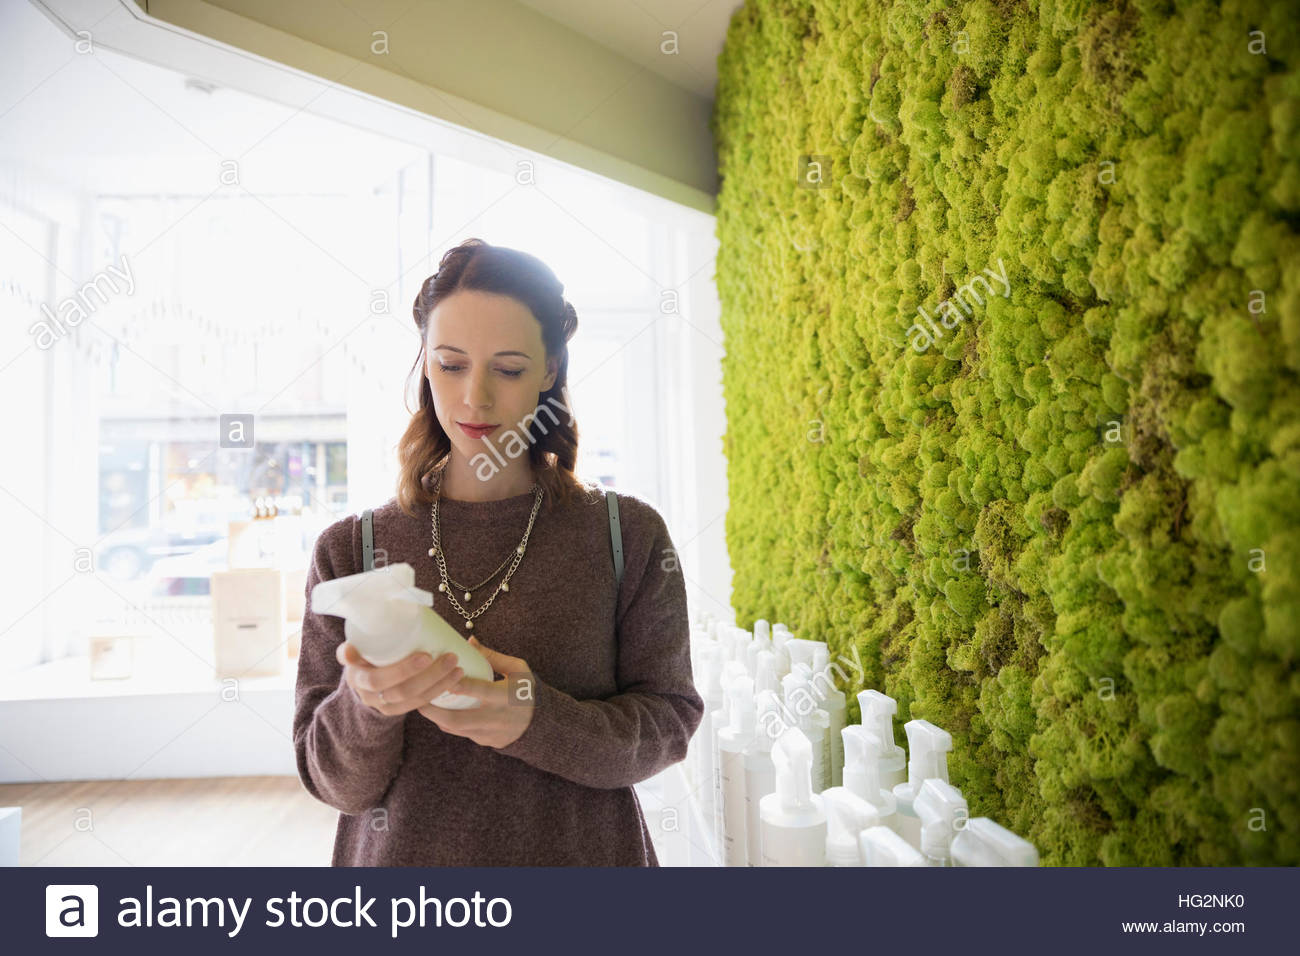 Woman shopping browsing cleaners in home goods shop - Stock Image